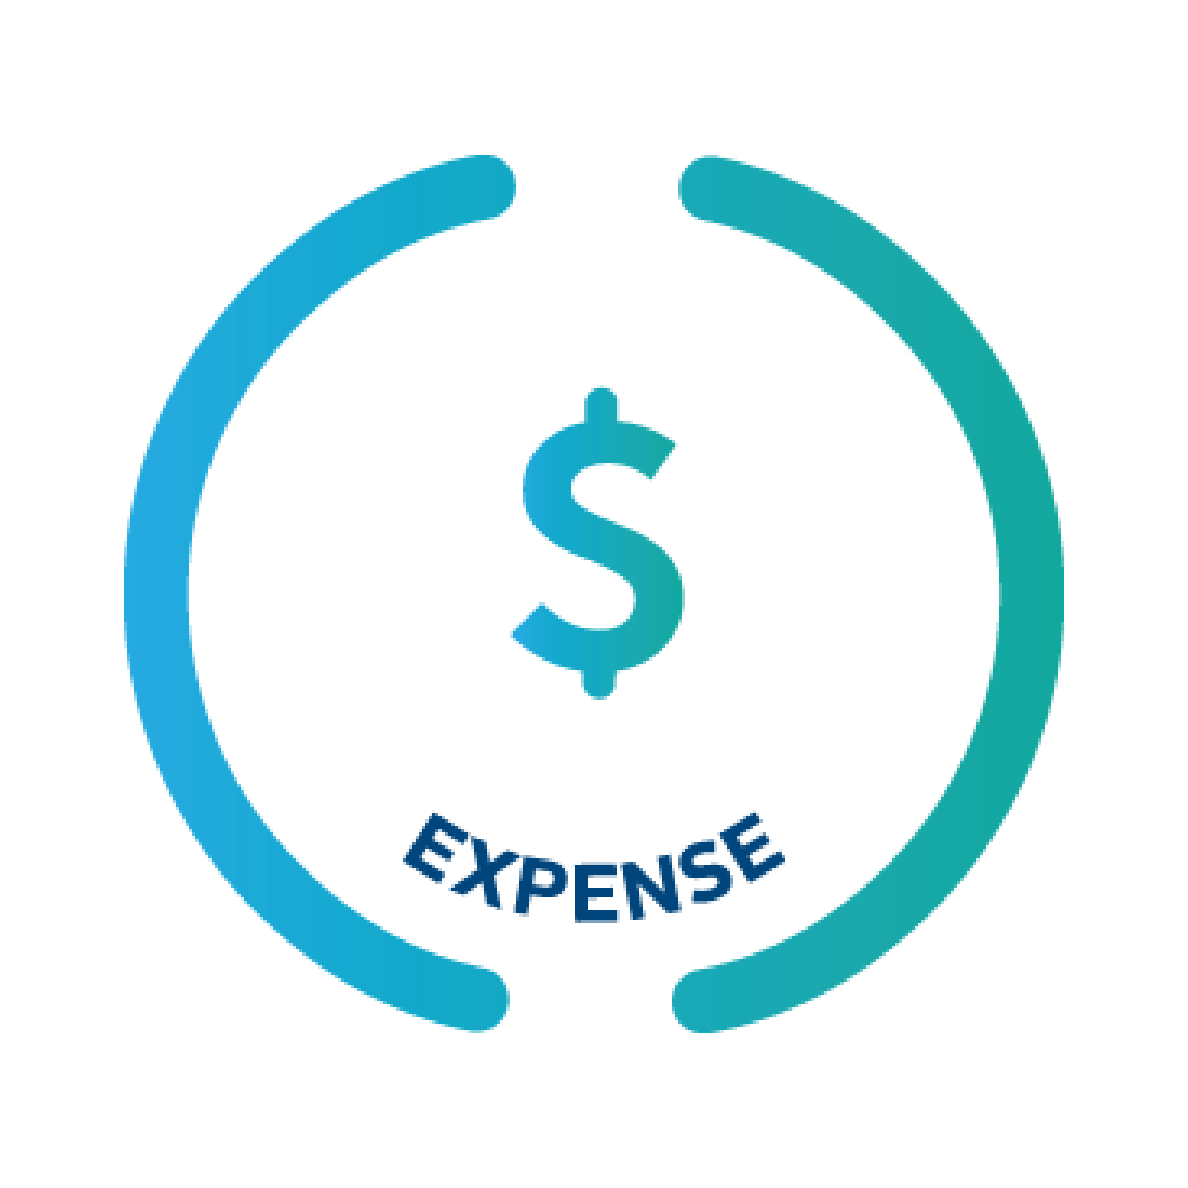 Expense Icon Large